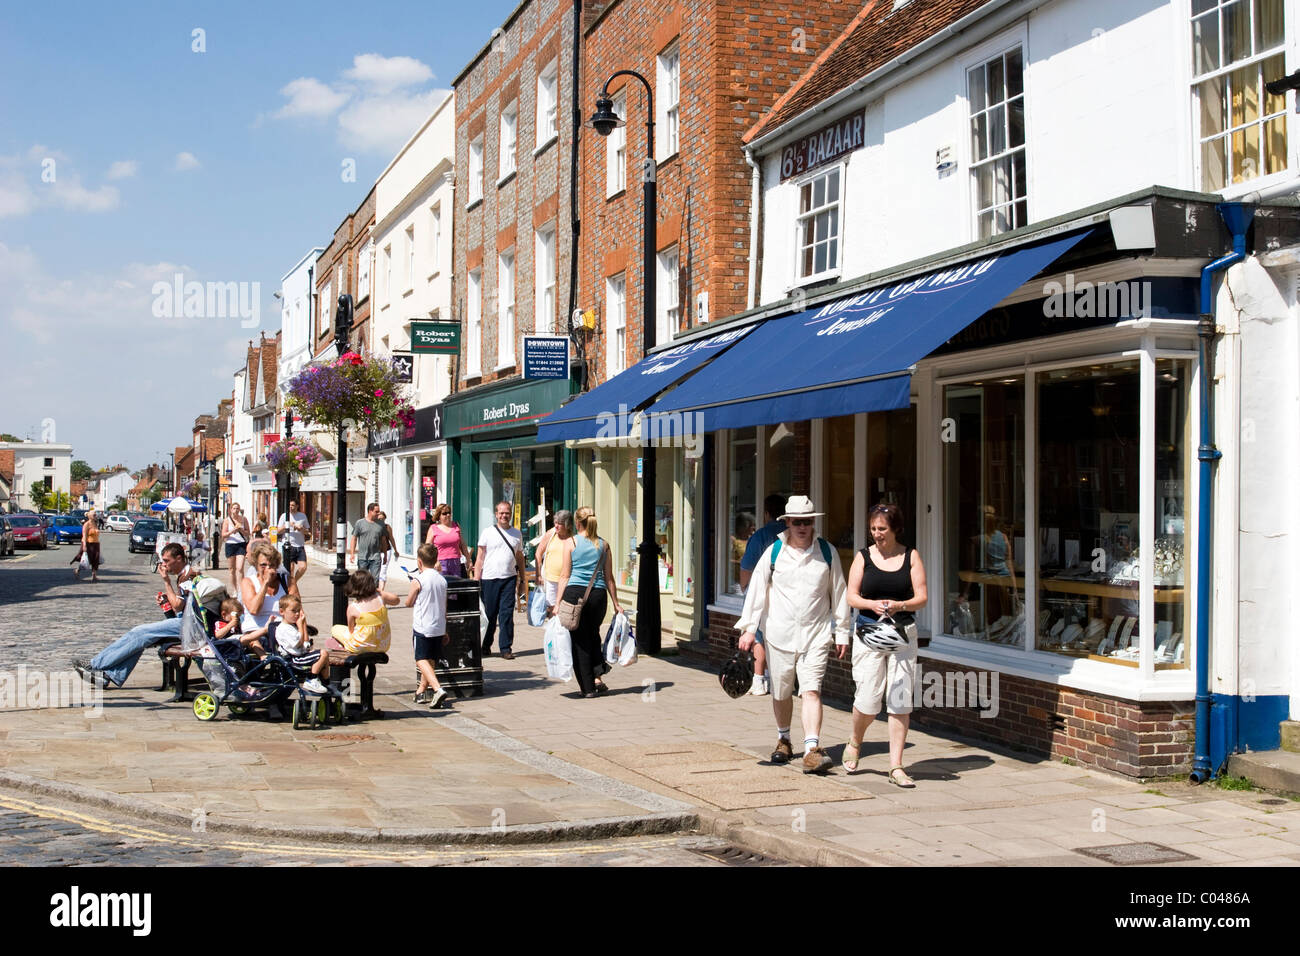 Thame High Street - Oxfordshire - Stock Image